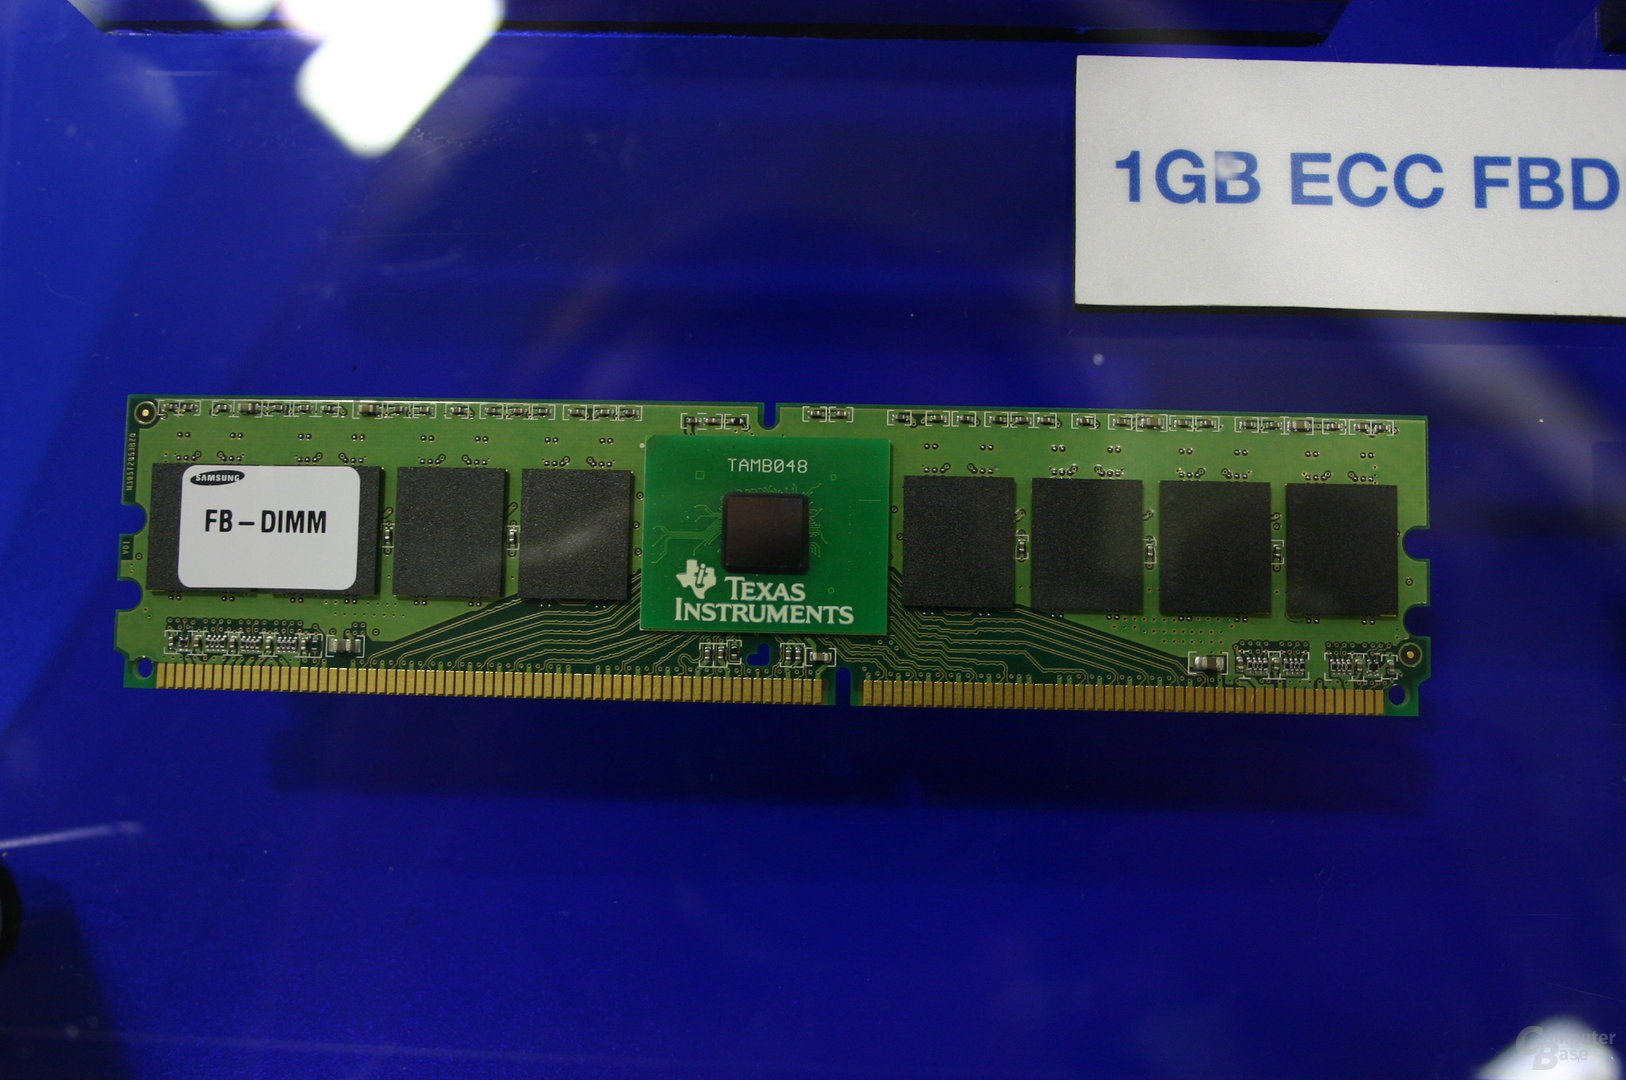 FB-DIMM mit AMB (Advanced Memory Buffer)-Chip von Texas Instruments